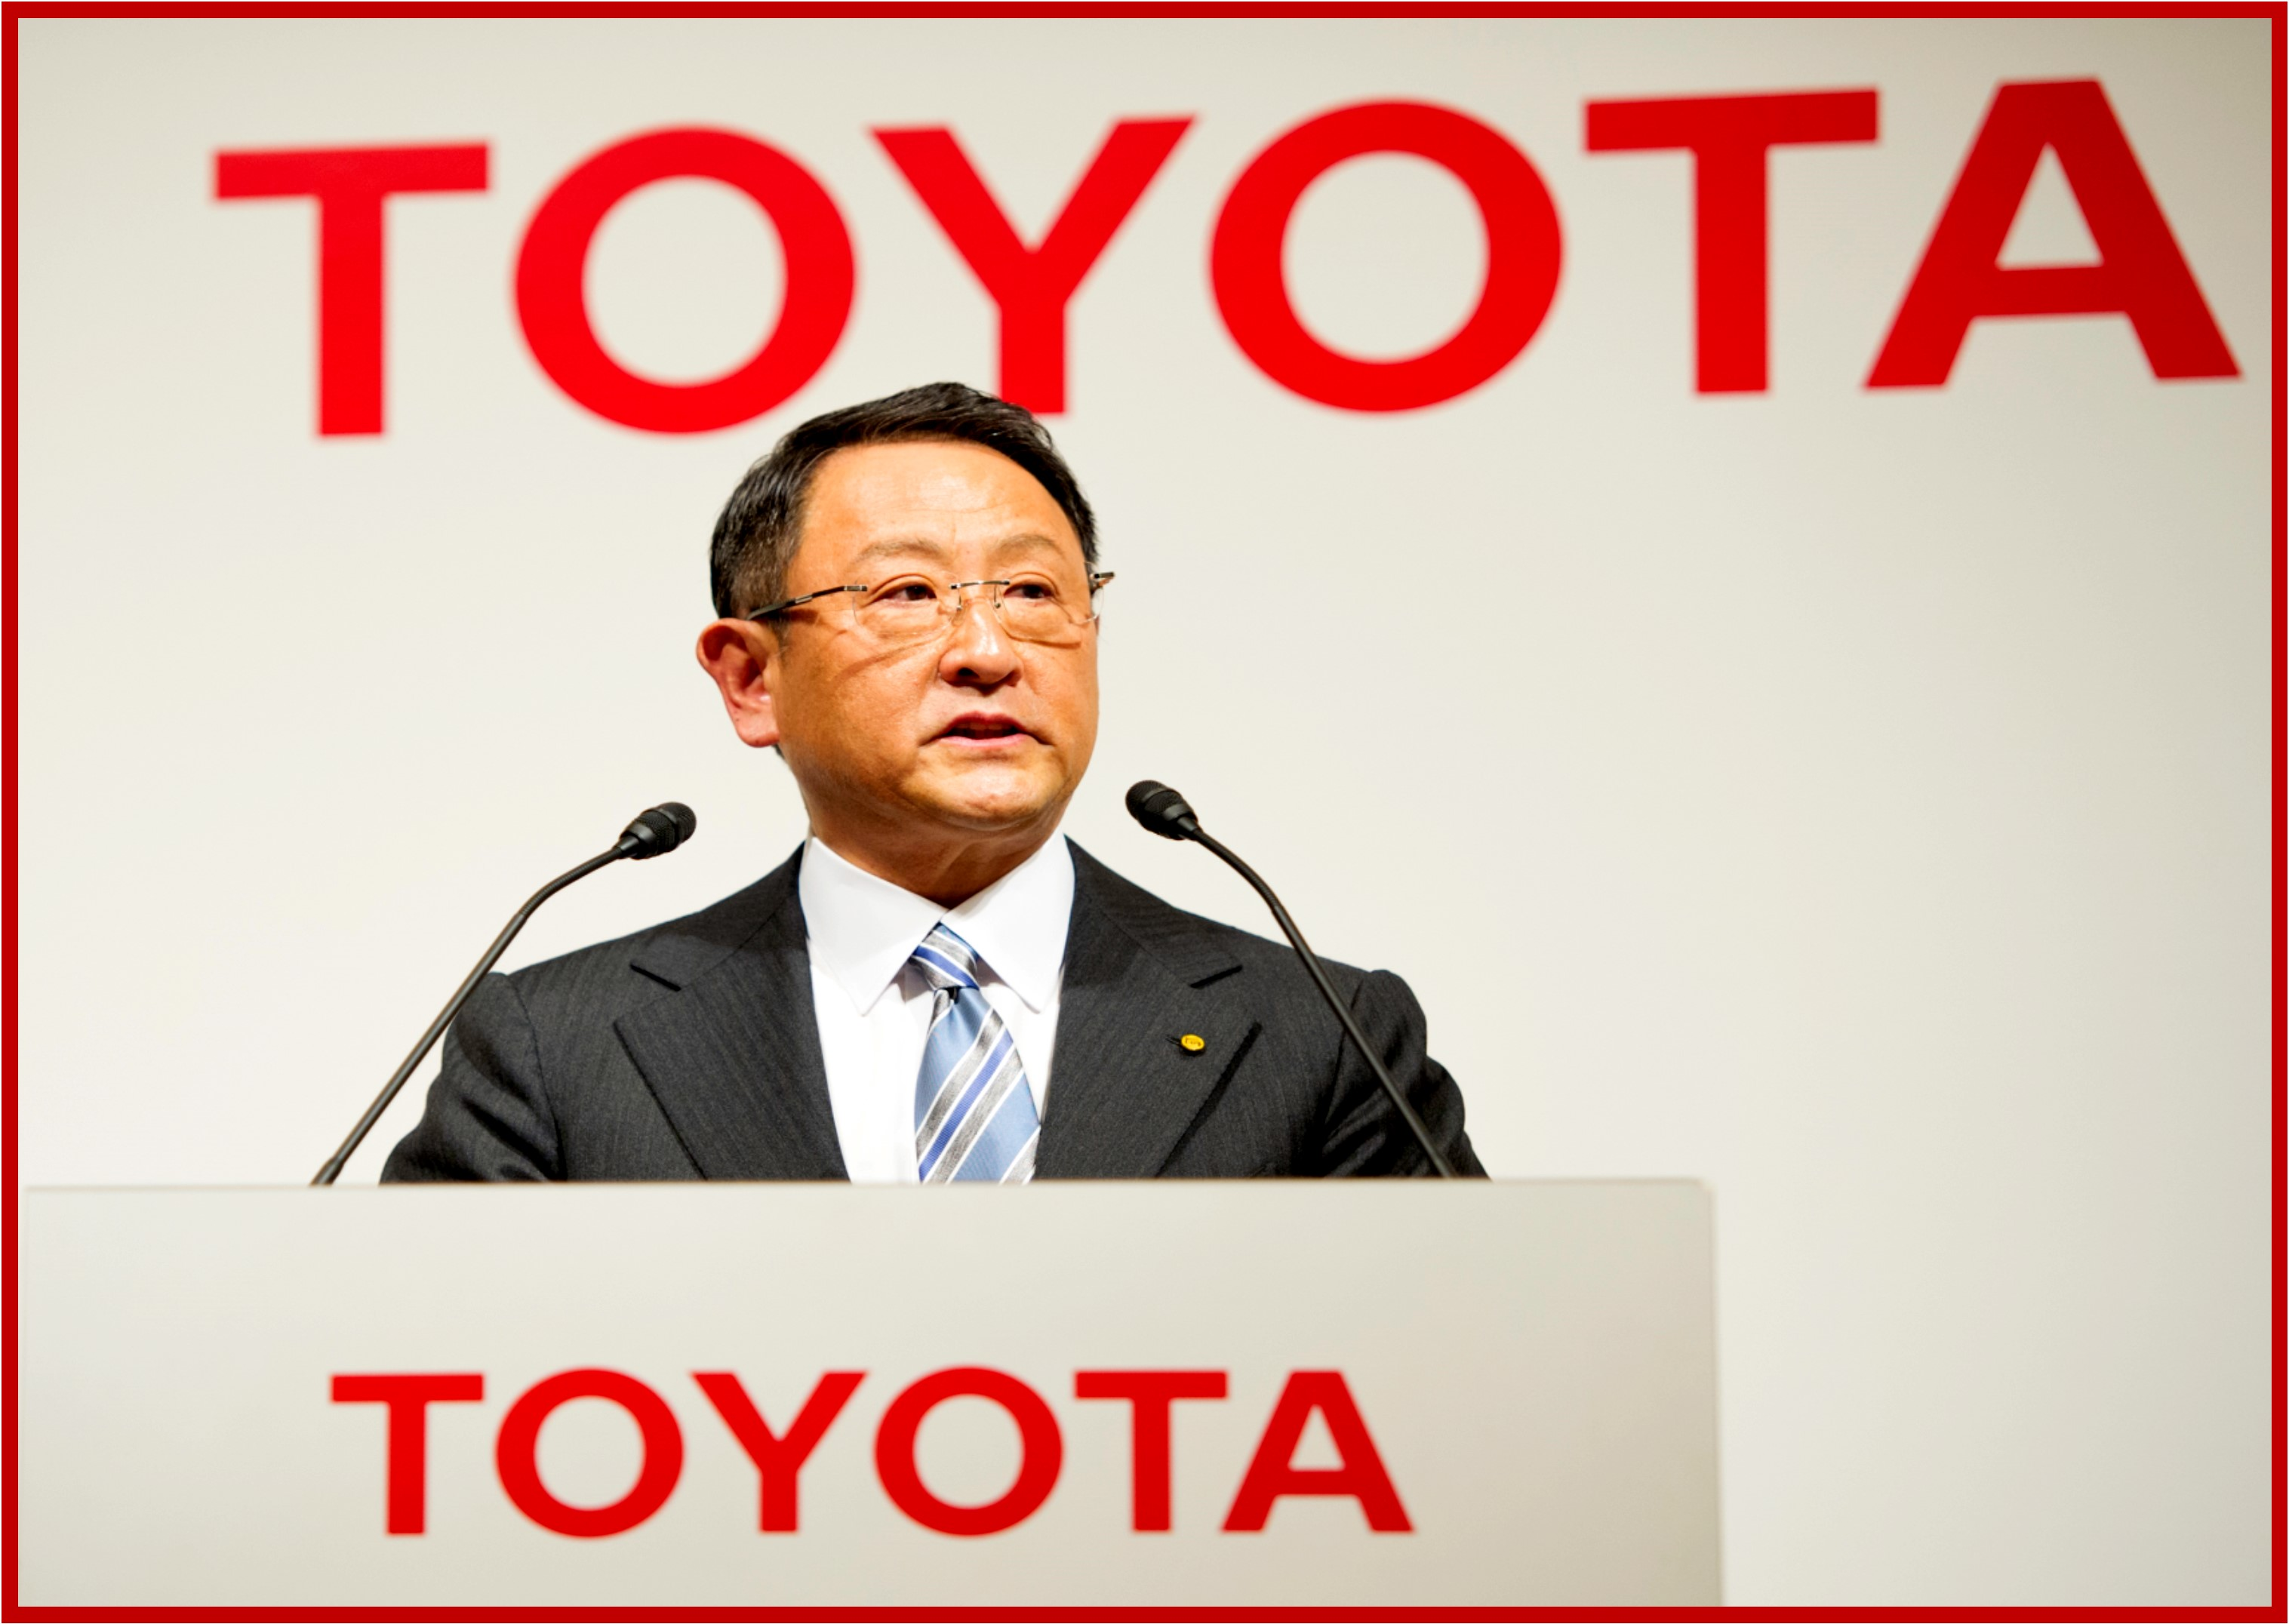 AutoInformed.com on Toyota FY 2017 FinancialResults